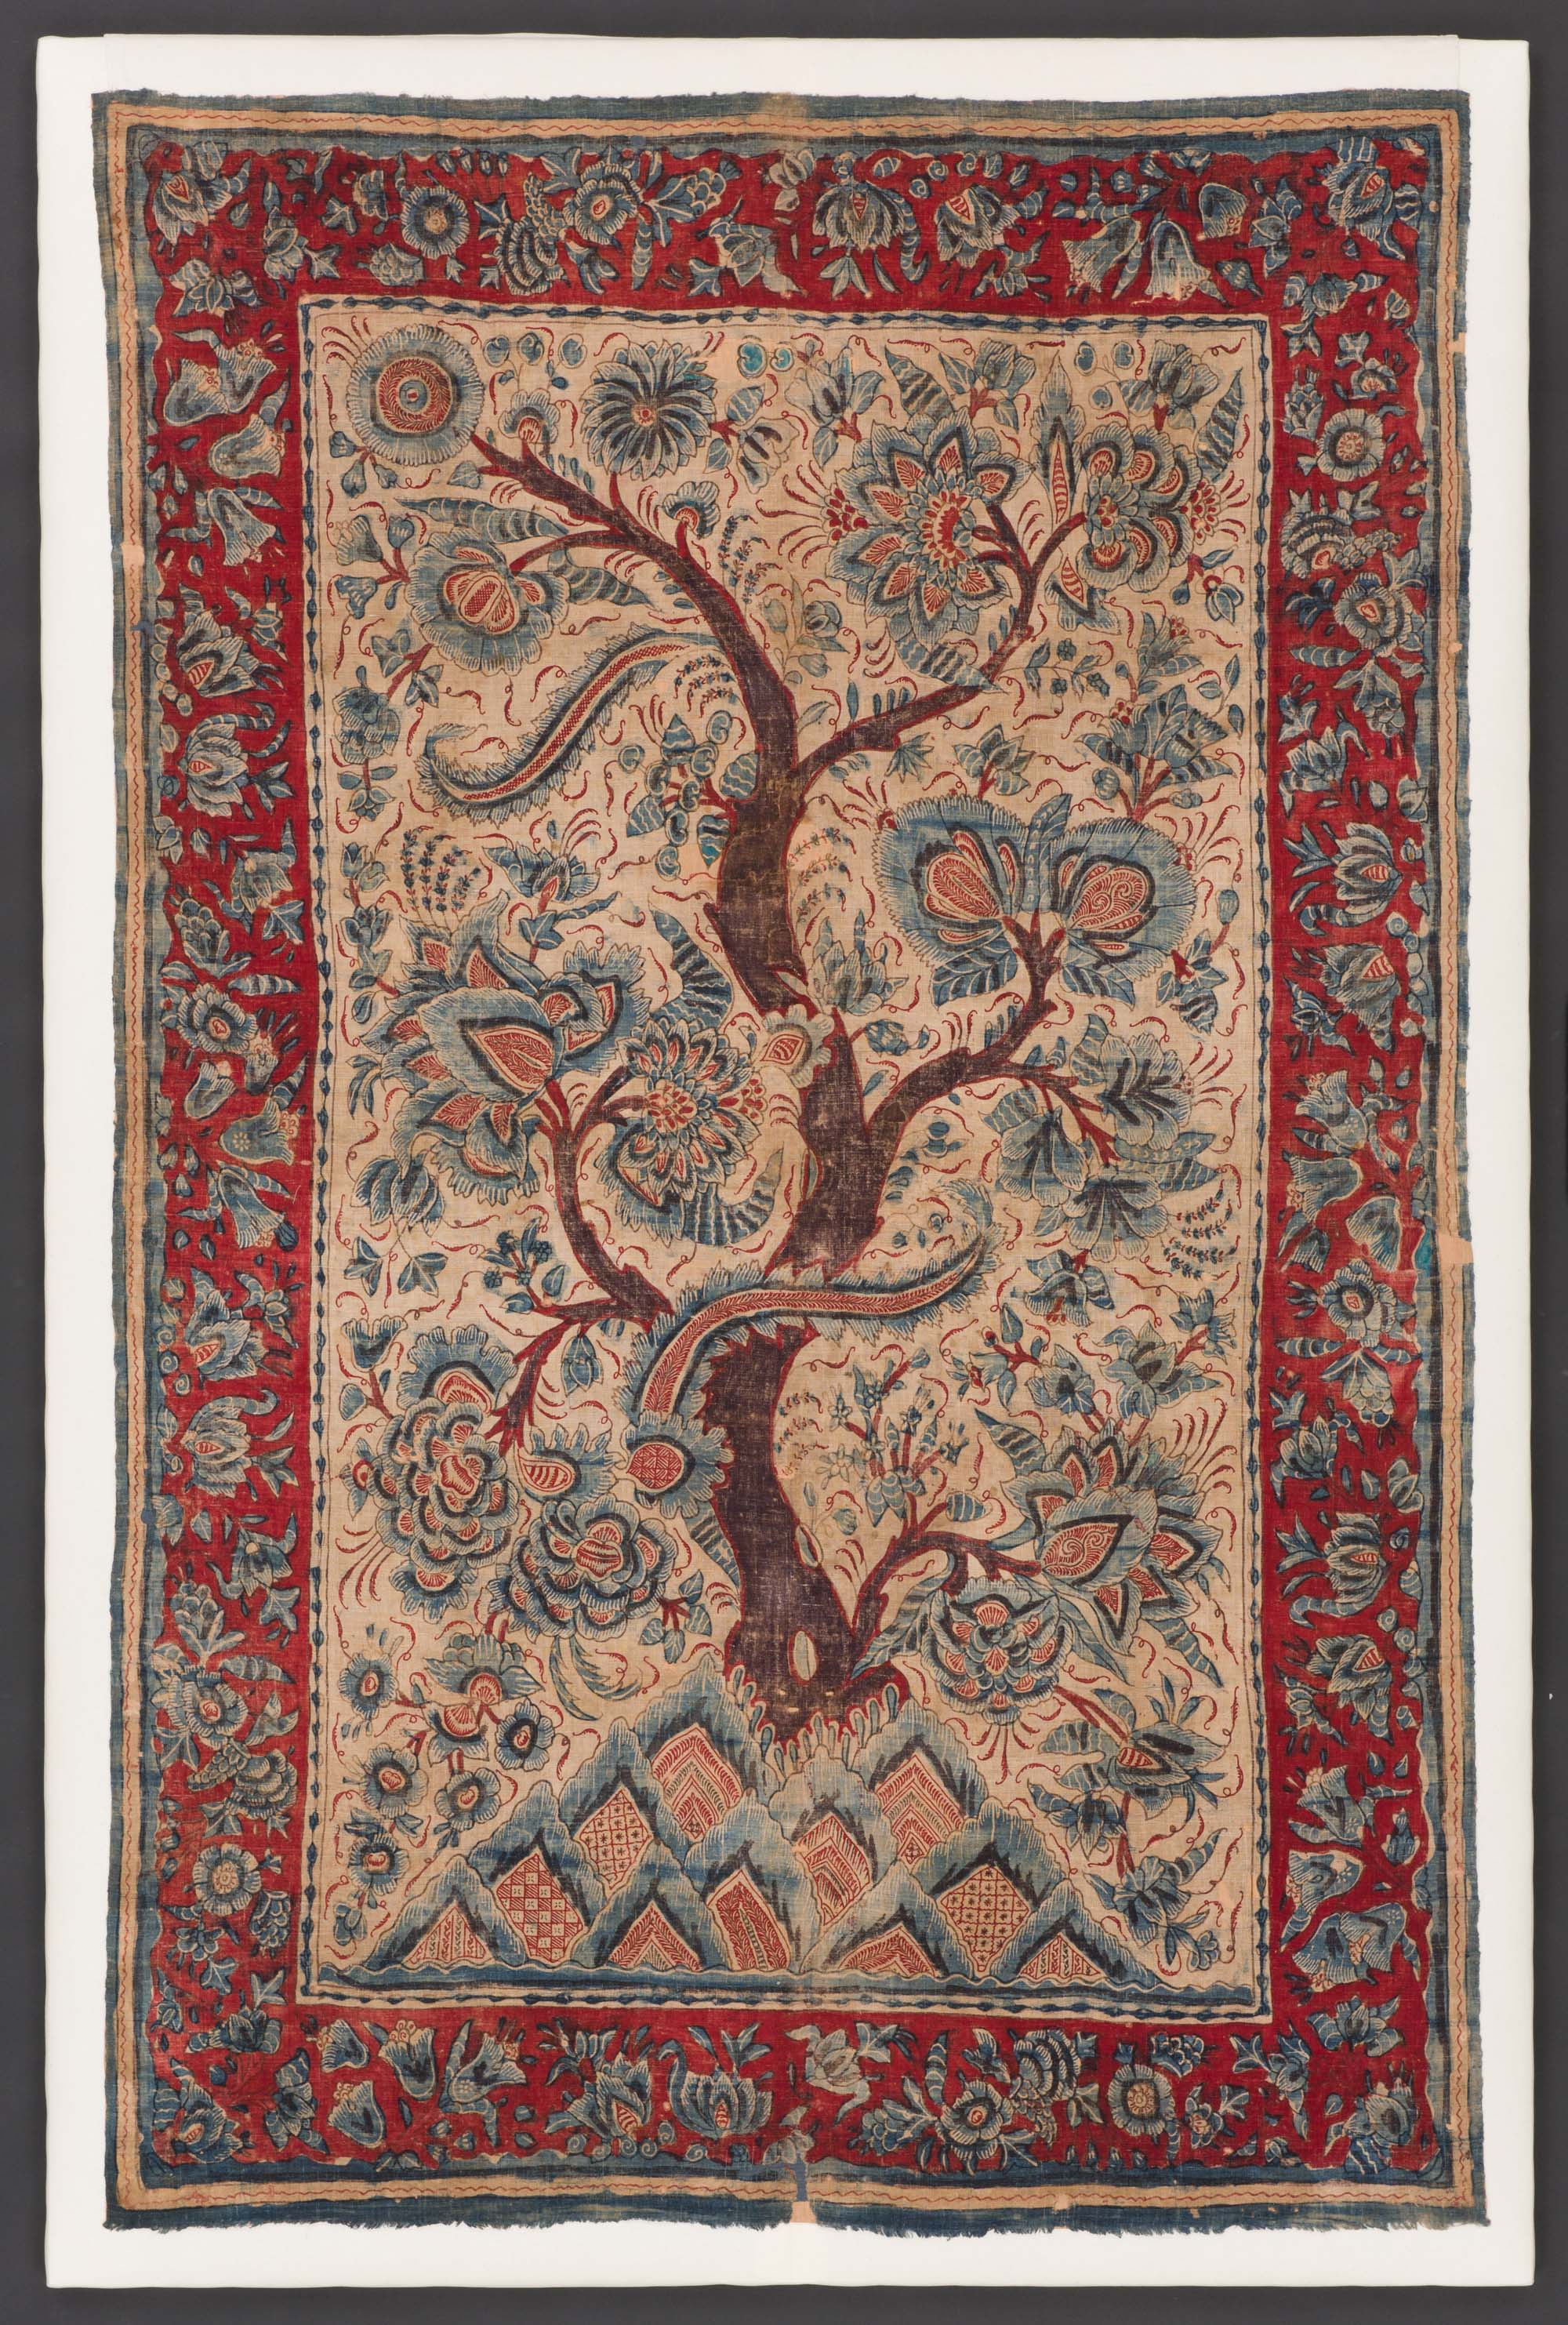 an embroidered wall hanging with central tree motif